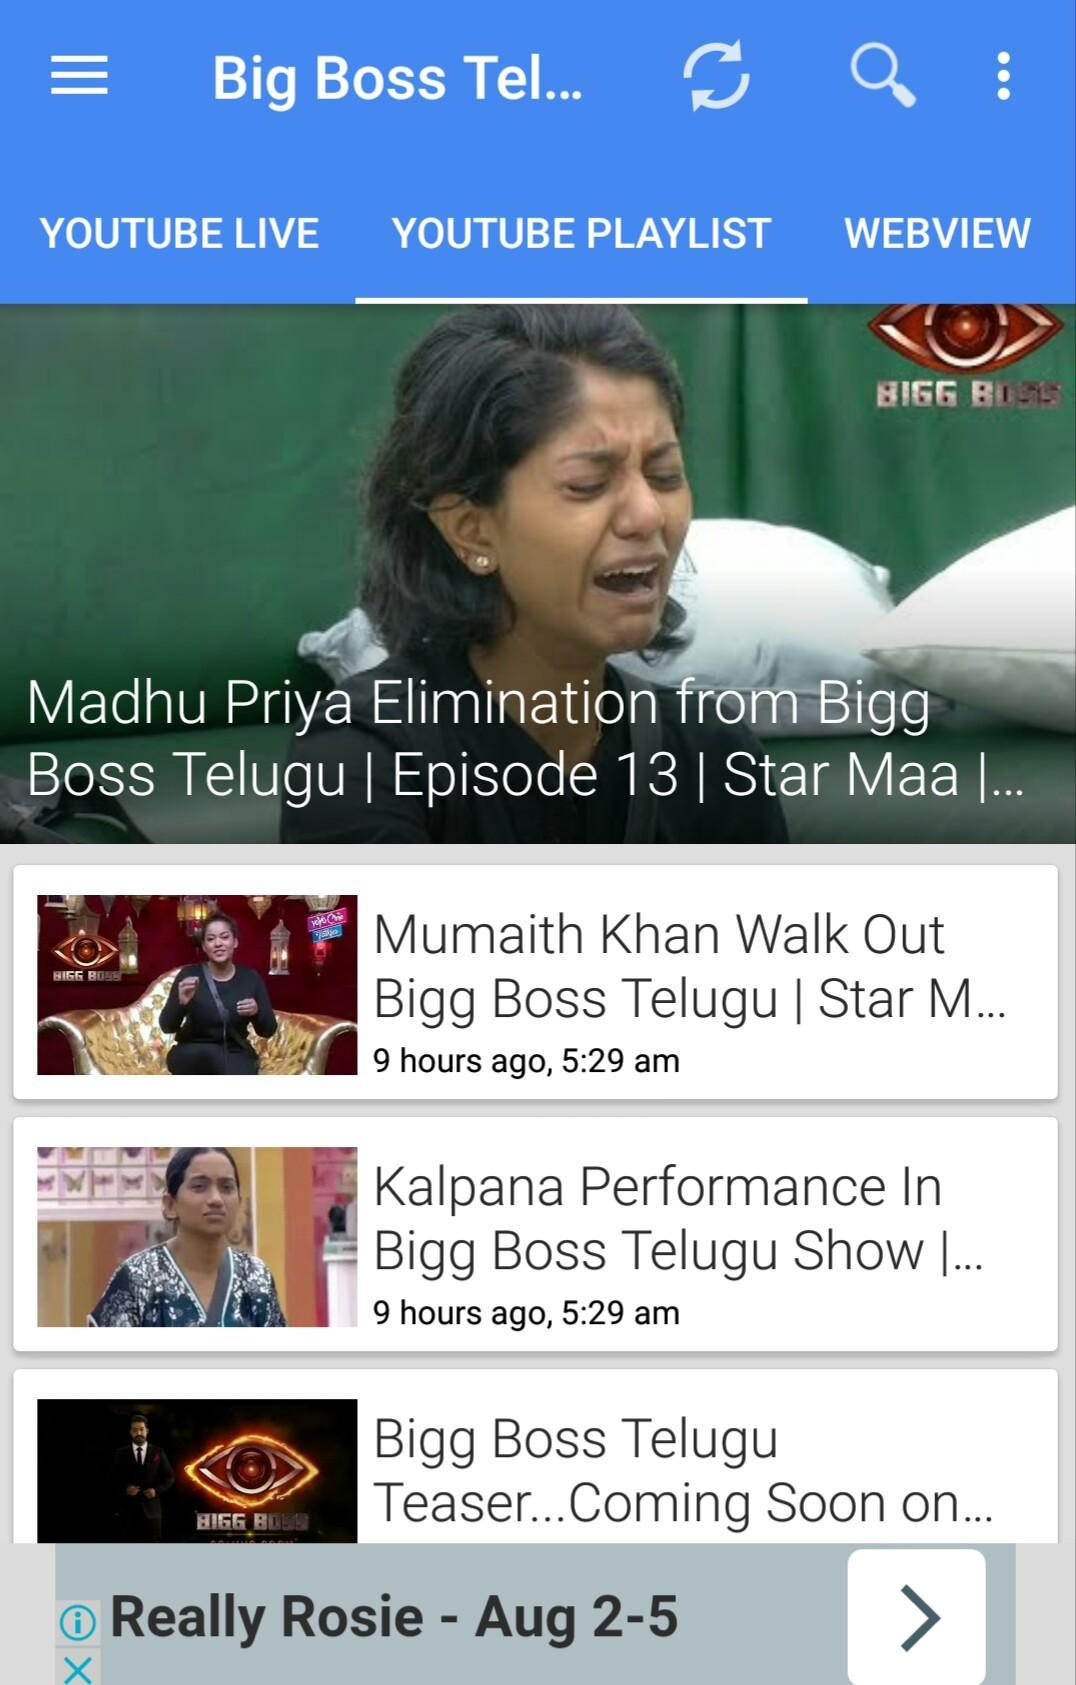 Big Boss Telugu for Android - APK Download